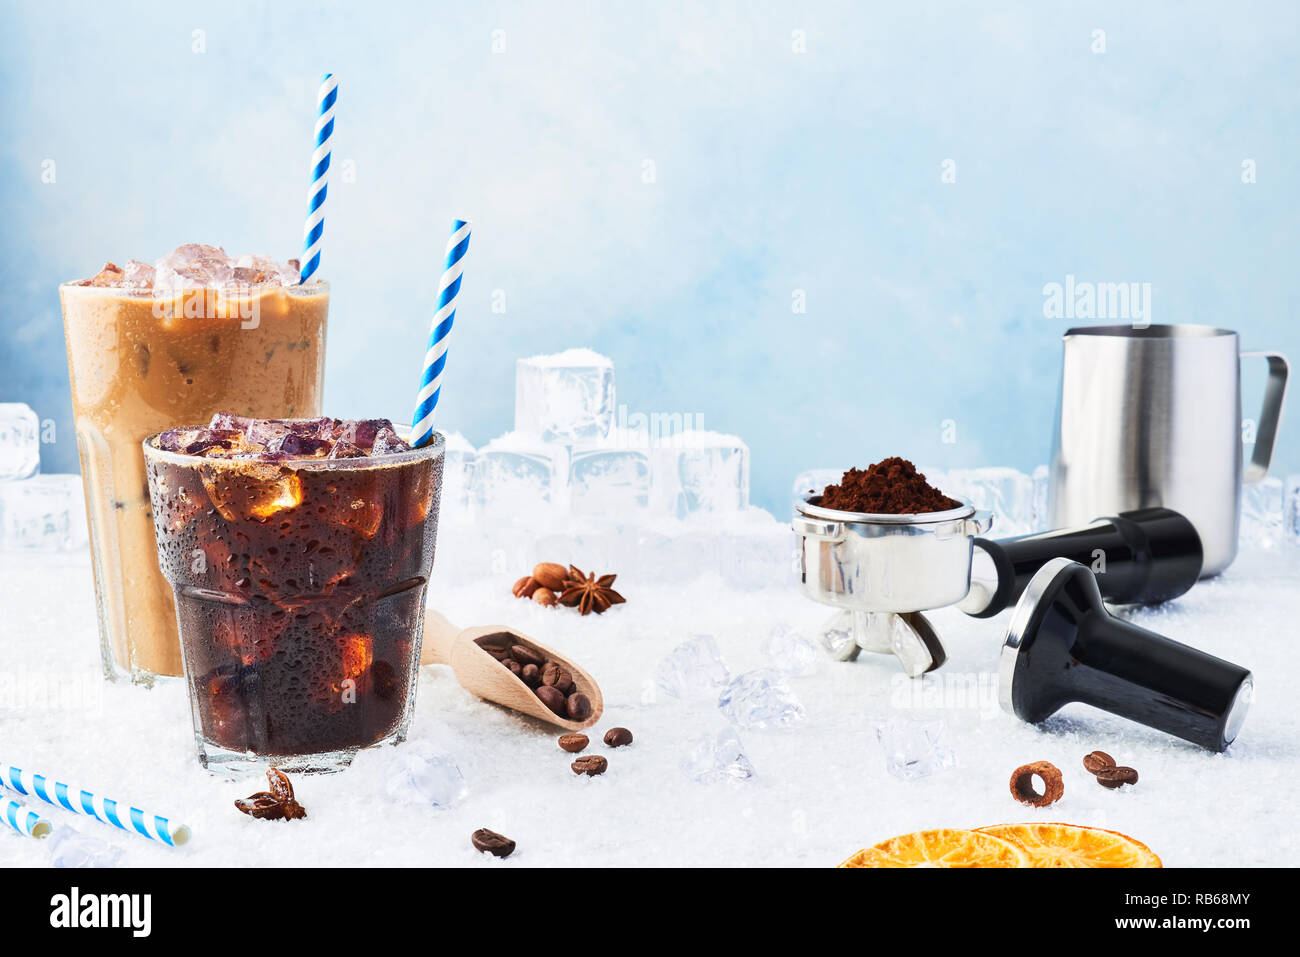 Summer drink iced coffee in a glass and ice coffee with cream in a tall glass surrounded by ice, coffee beans, portafilter, tamper, milk jug and vario Stock Photo